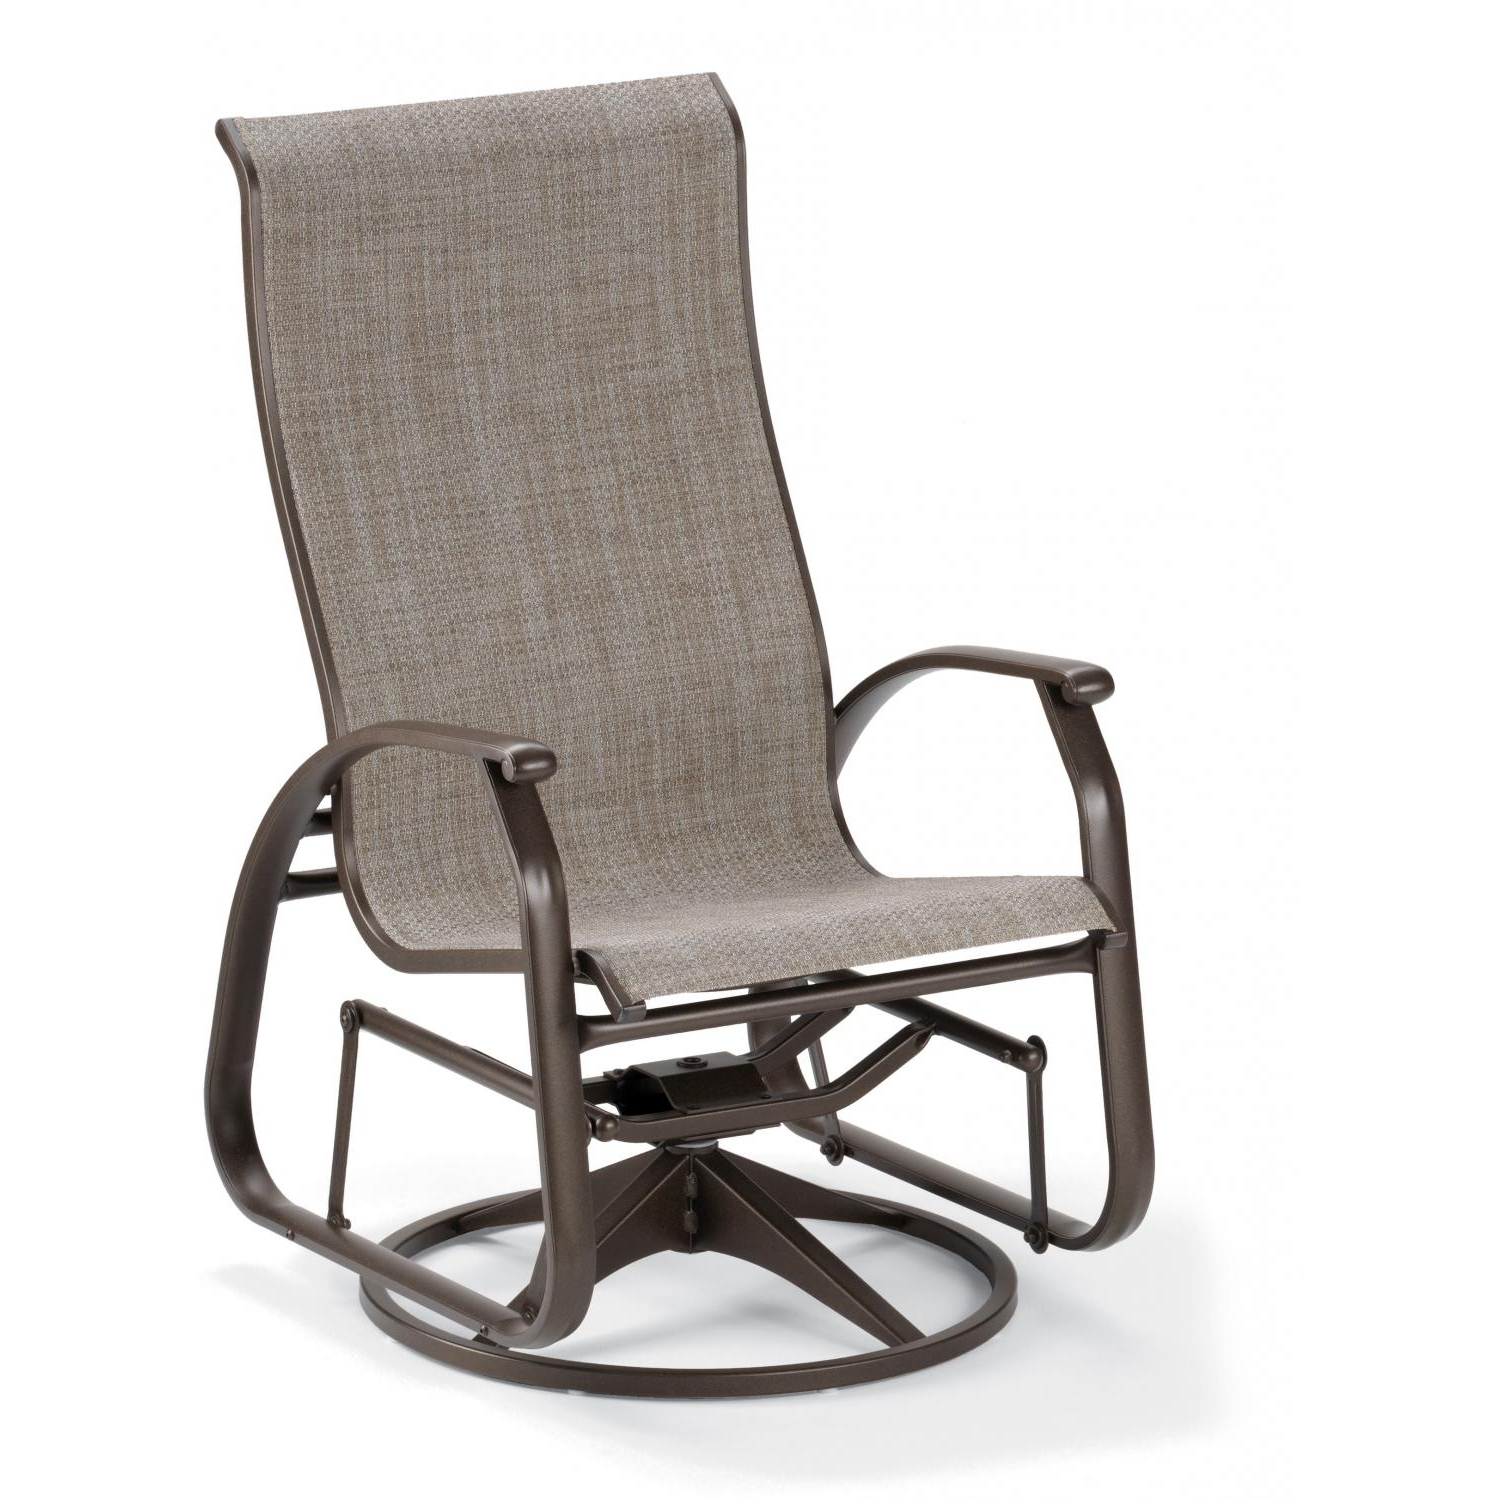 Popular Patio Sling Rocking Chairs In Telescope Casual Cape May Sling Patio Supreme Swivel Glider Dining (View 5 of 15)